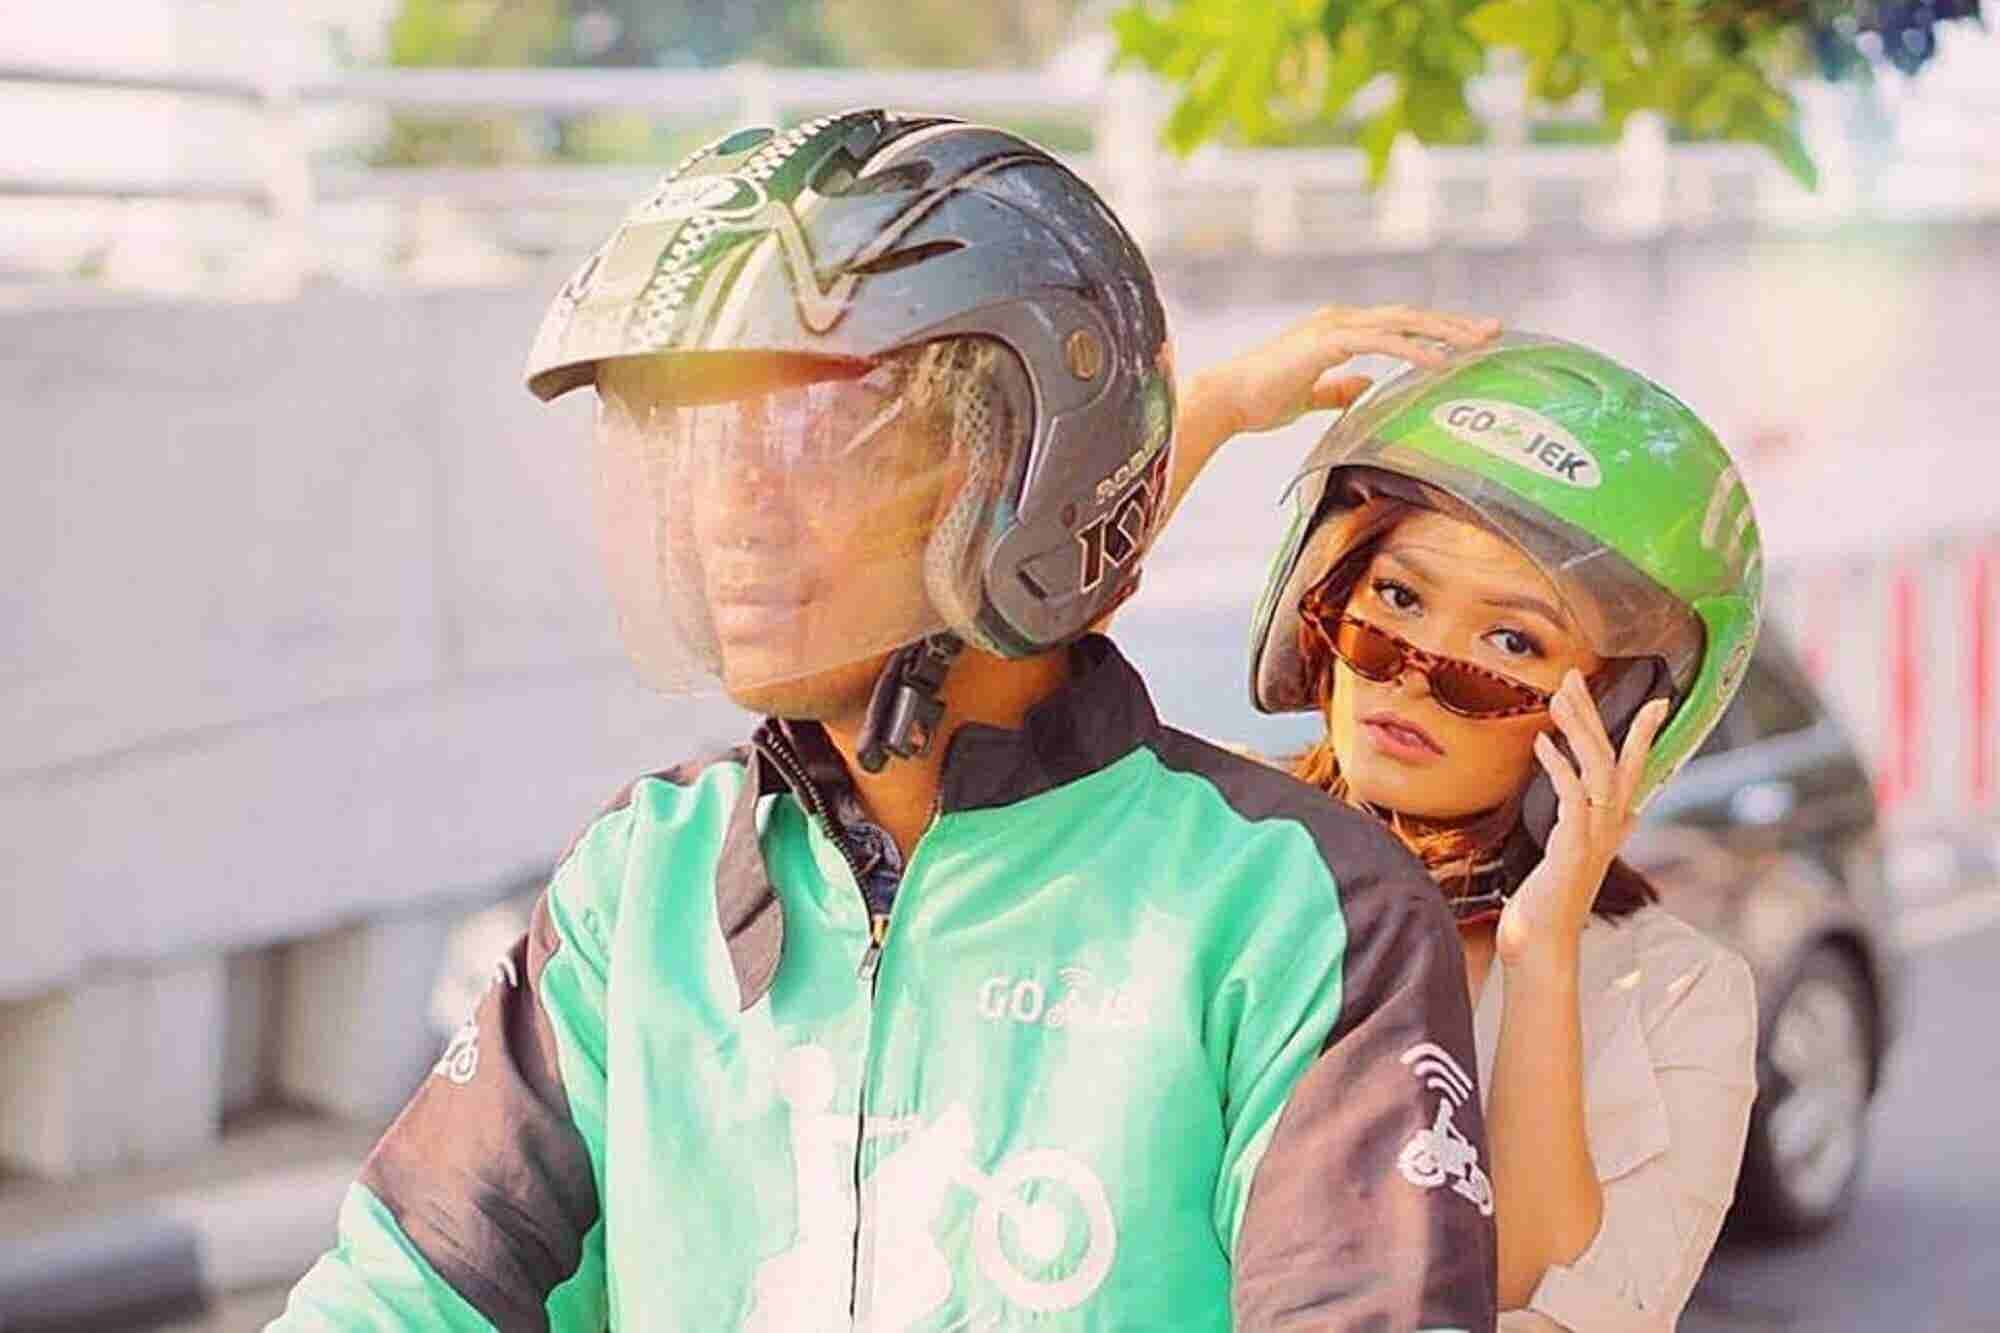 Go-Jek Grabs Singapore After the Philippines' Rejection